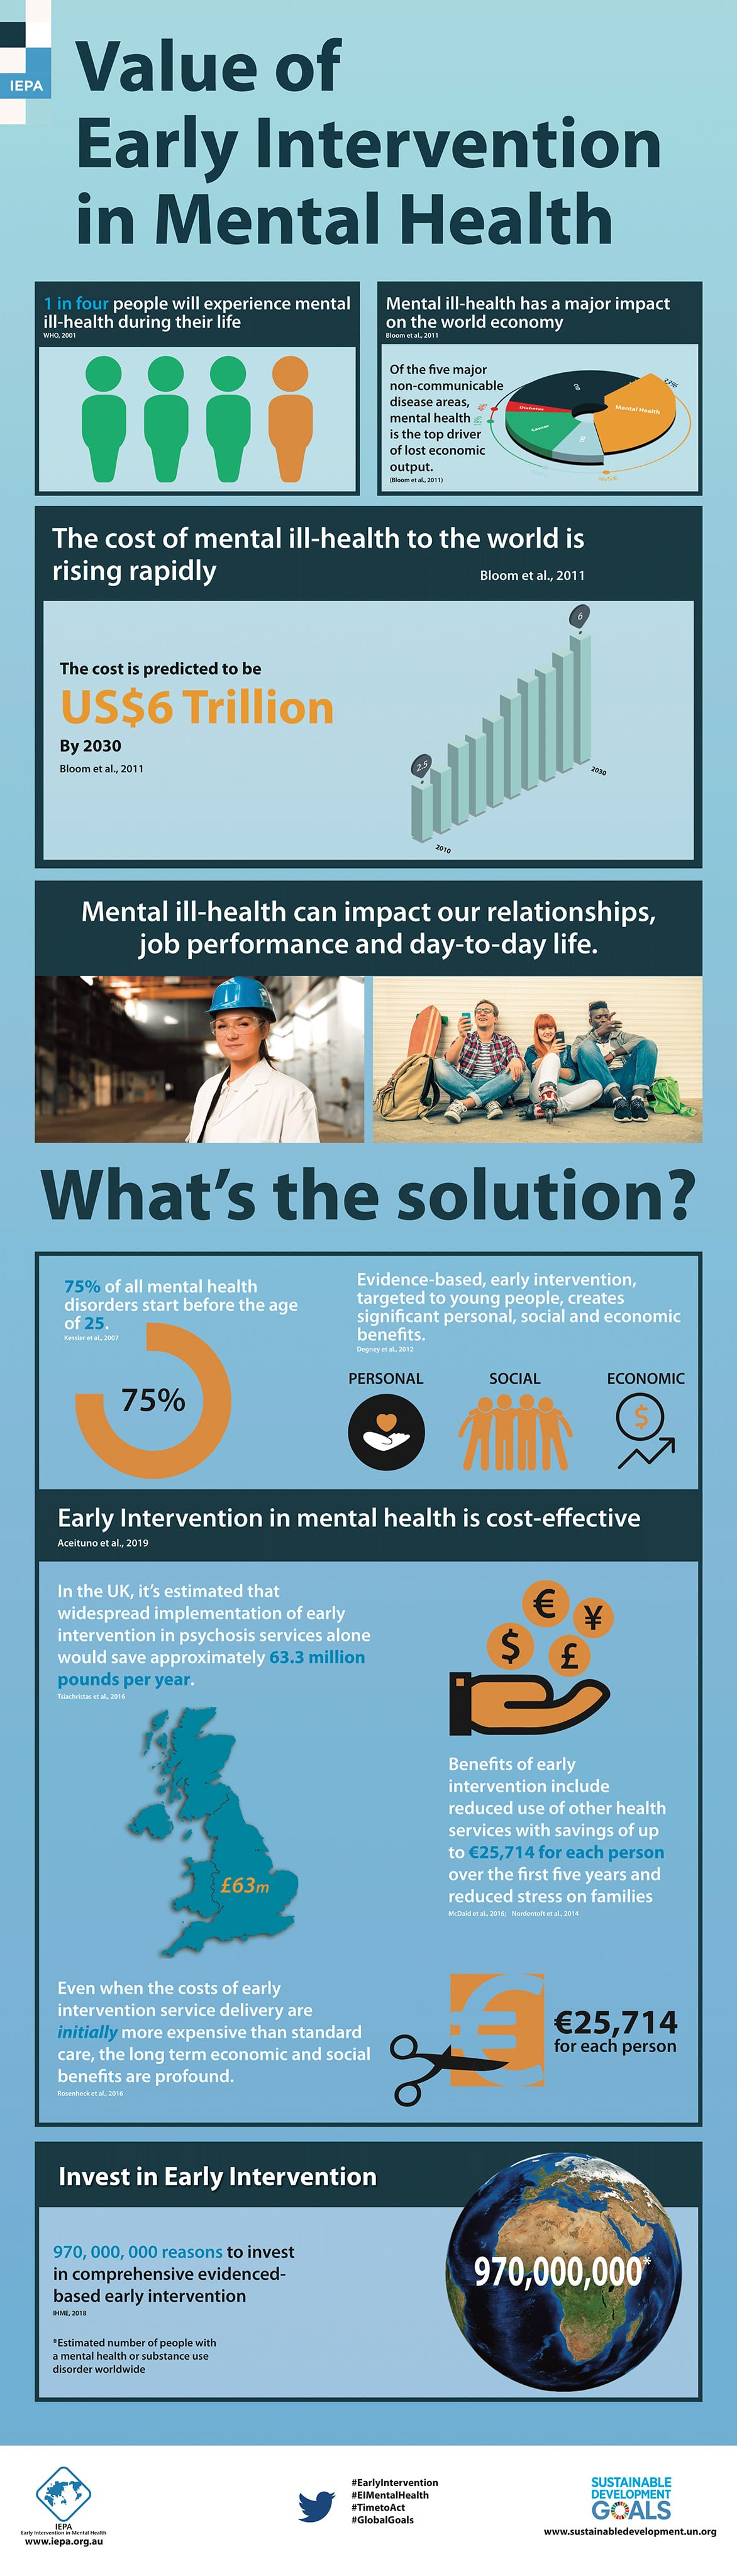 IEPA - Value of Early Intervention in Mental Health - Infographic